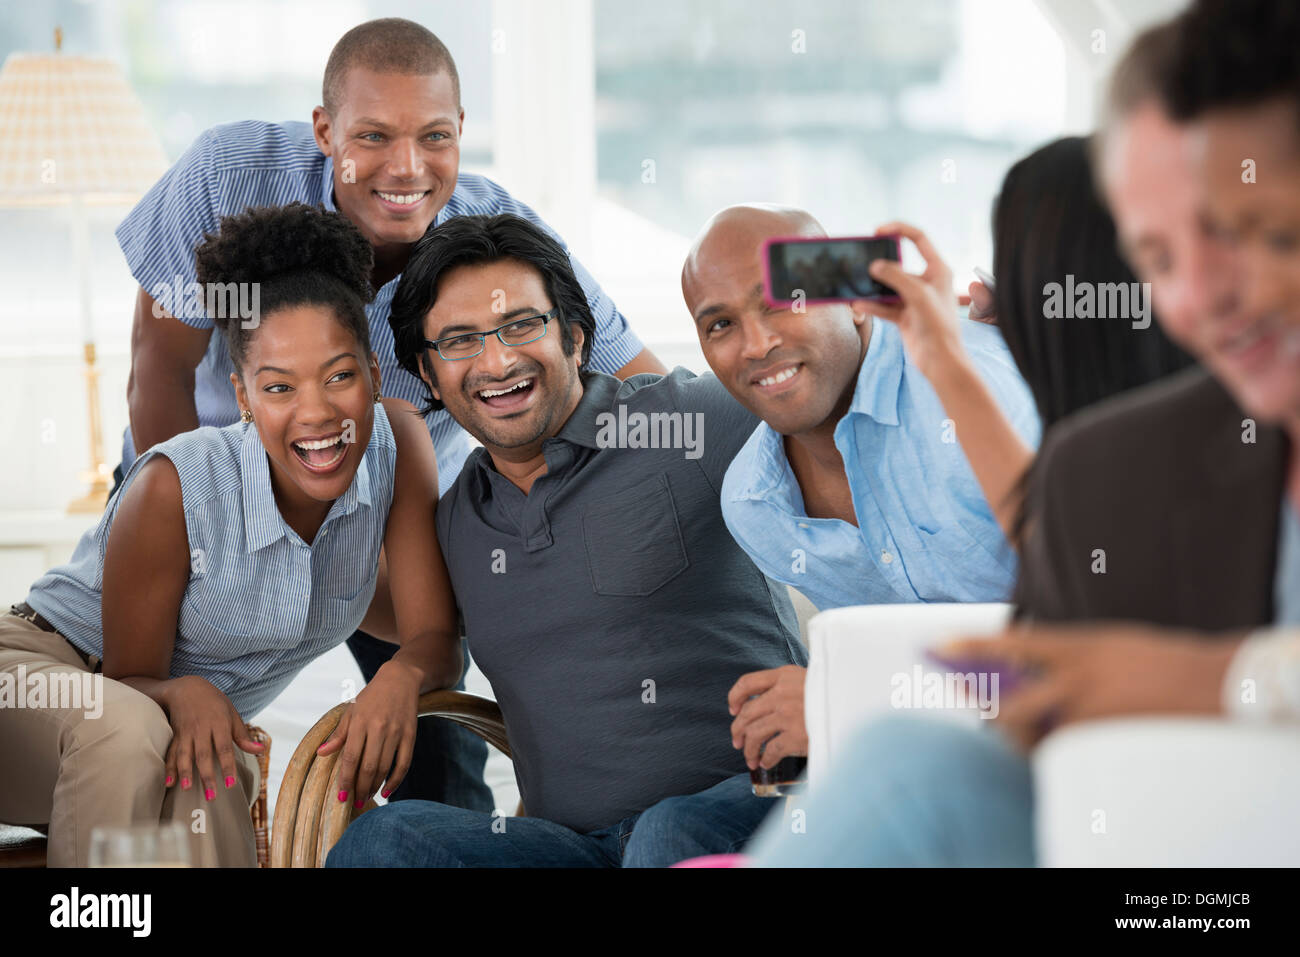 office event. A man taking a selfie of the group with a smart phone. Stock Photo